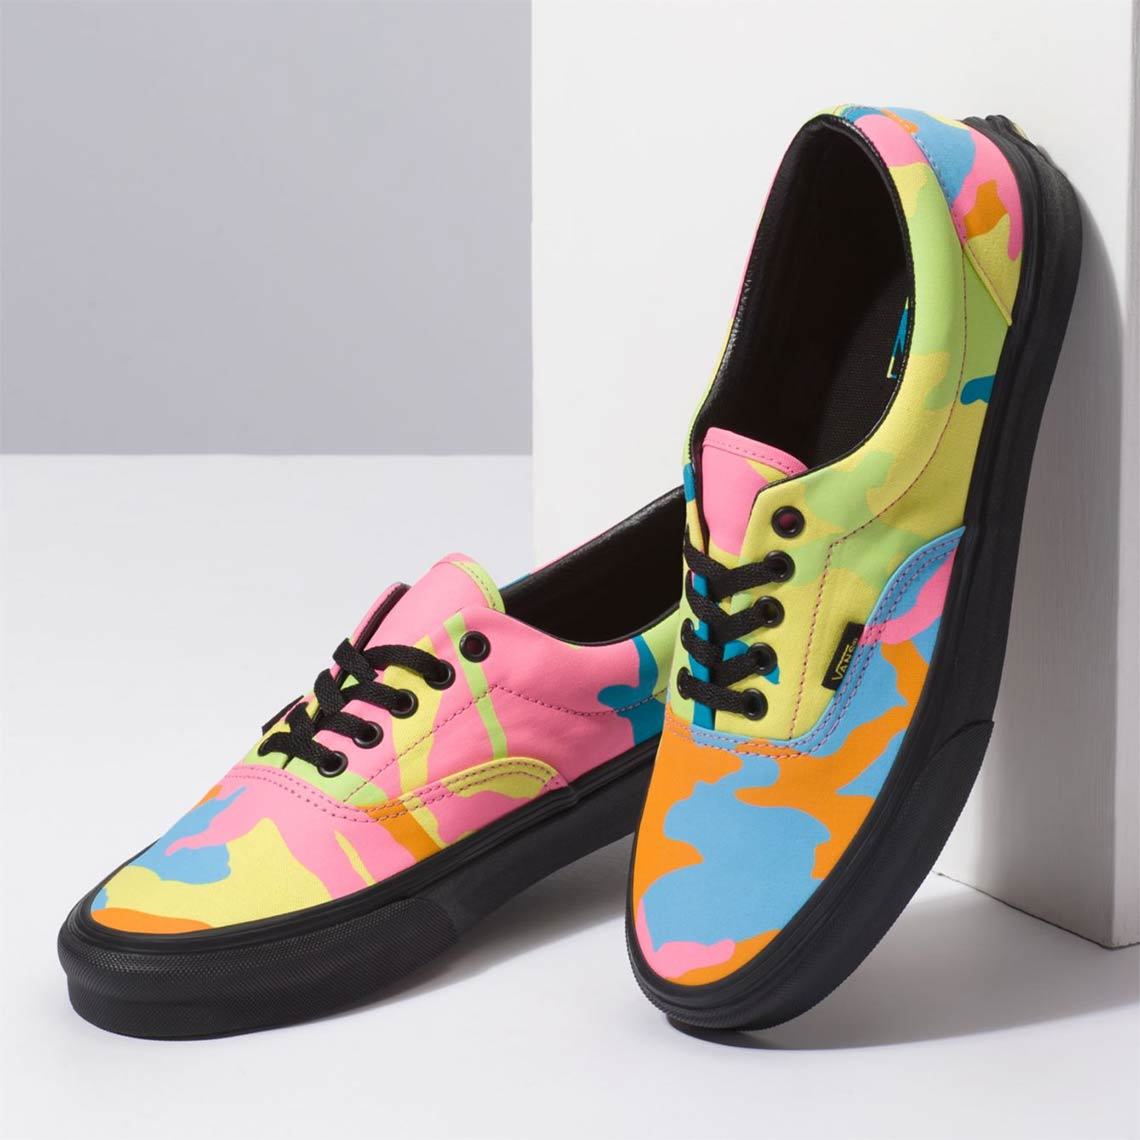 Fashion style Shoes vans neon color for woman